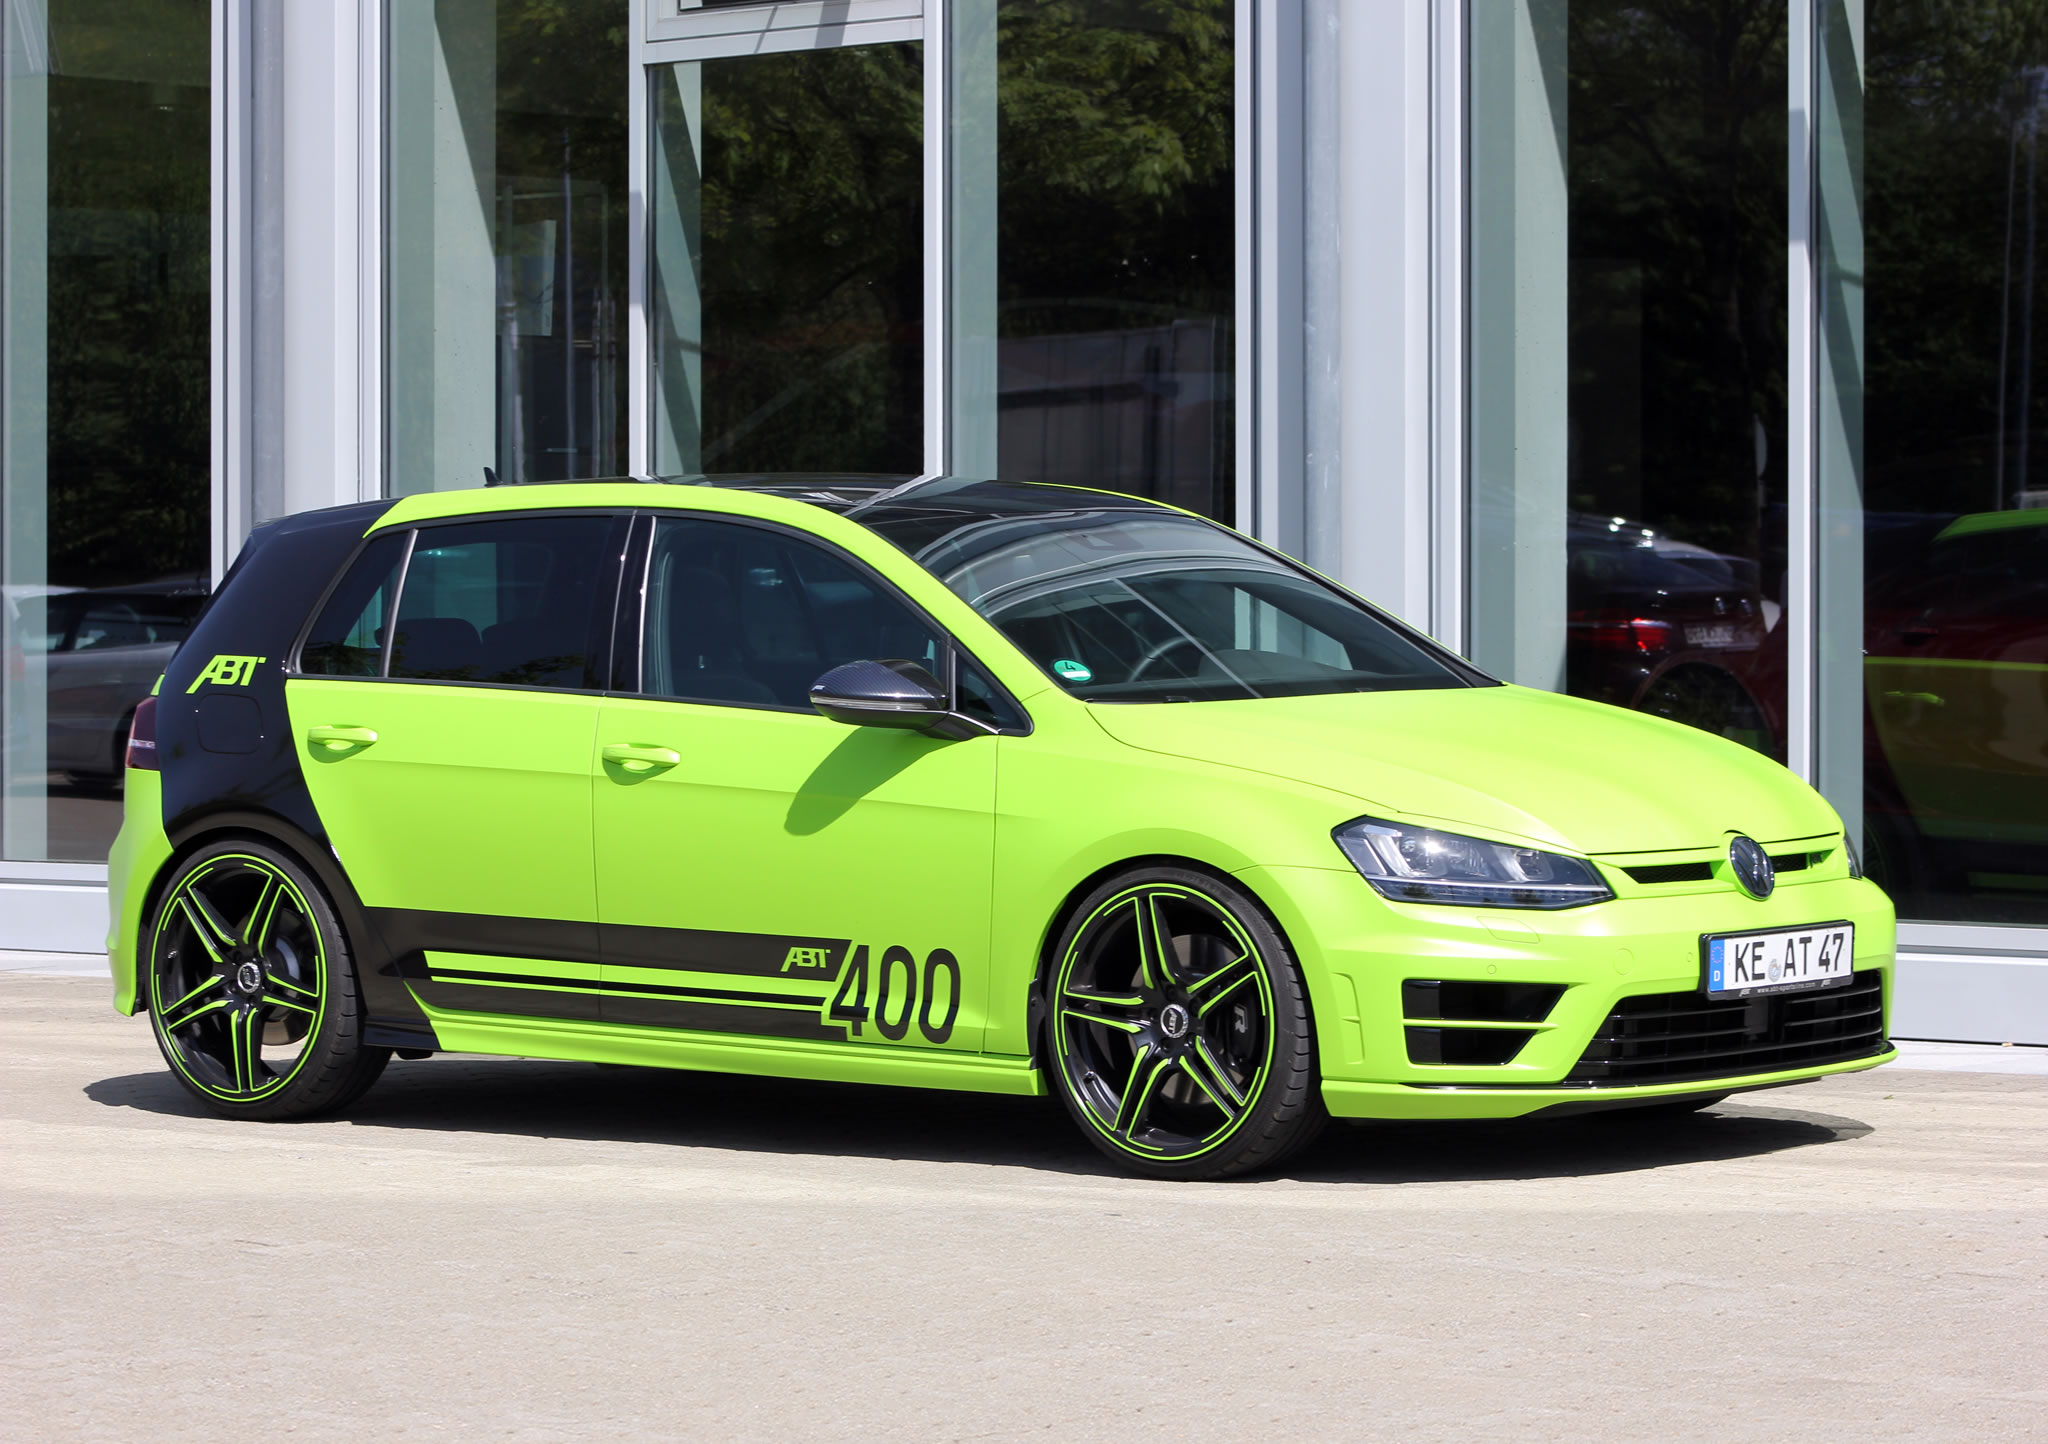 2015 volkswagen golf r 400 by abt front photo green exterior color size 2048 x 1444 nr 1 8. Black Bedroom Furniture Sets. Home Design Ideas